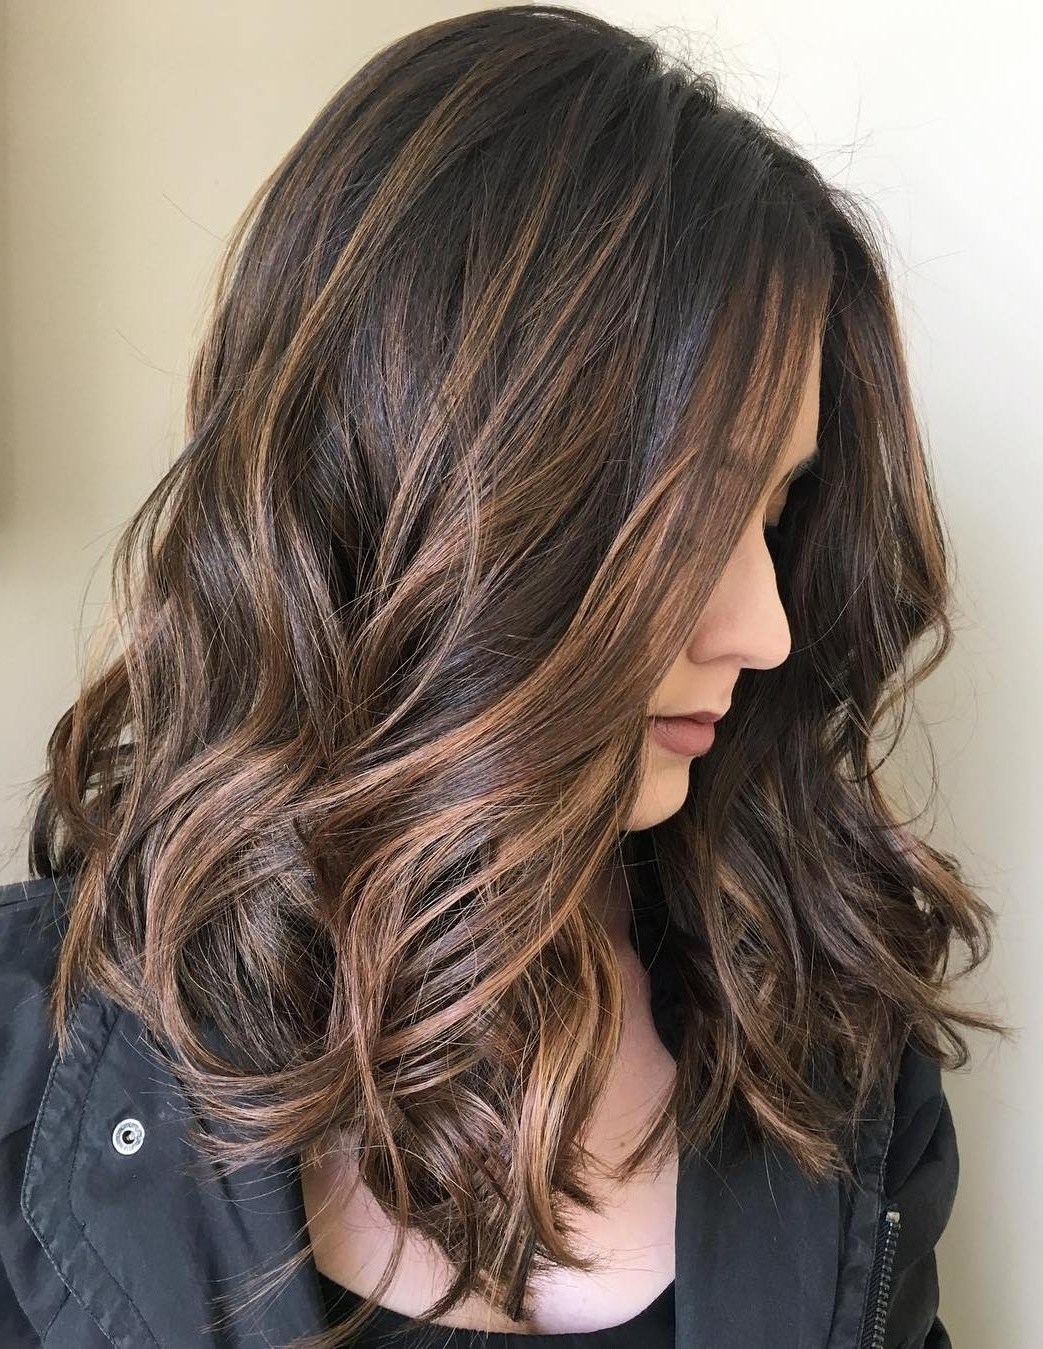 70 Balayage Hair Color Ideas With Blonde, Brown And Caramel Highlights For Latest Sunkissed Long Locks Blonde Hairstyles (Gallery 17 of 20)